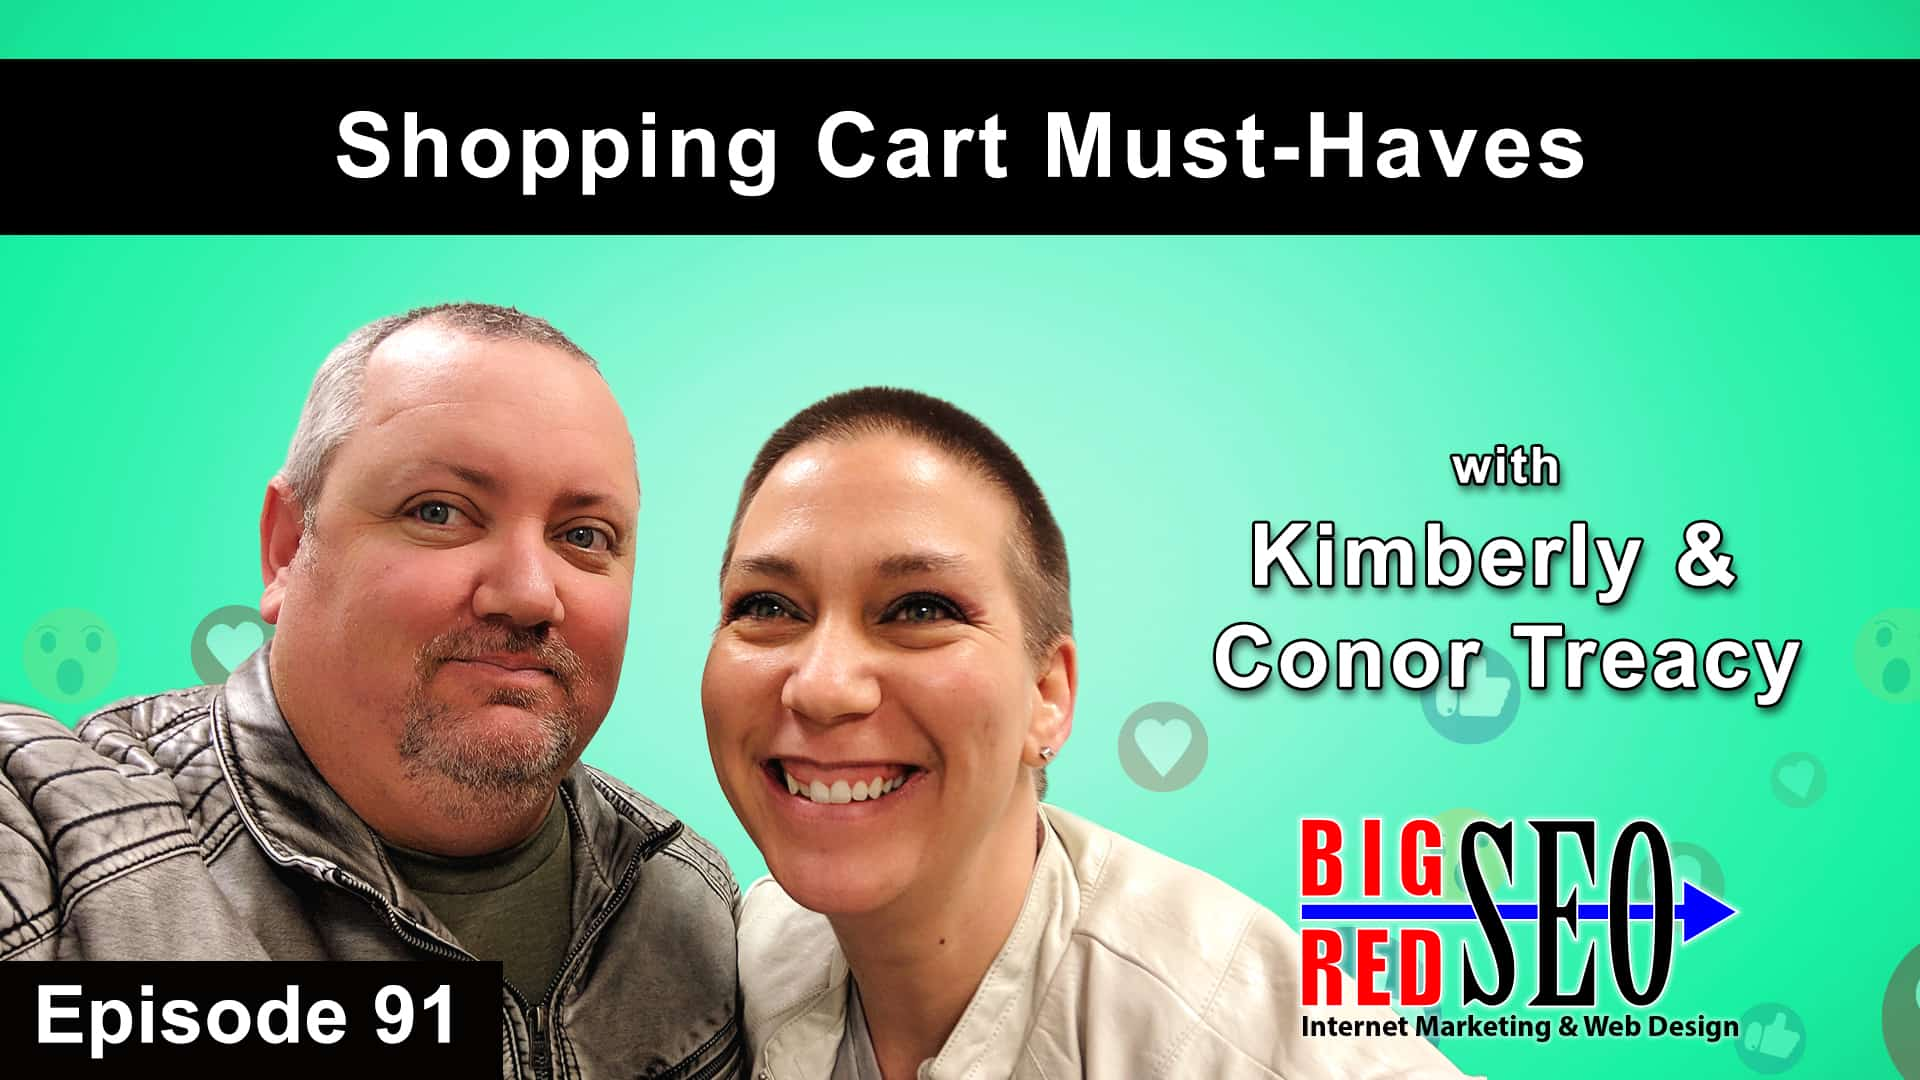 Shopping Cart Must-Have Items - Video Episode 91